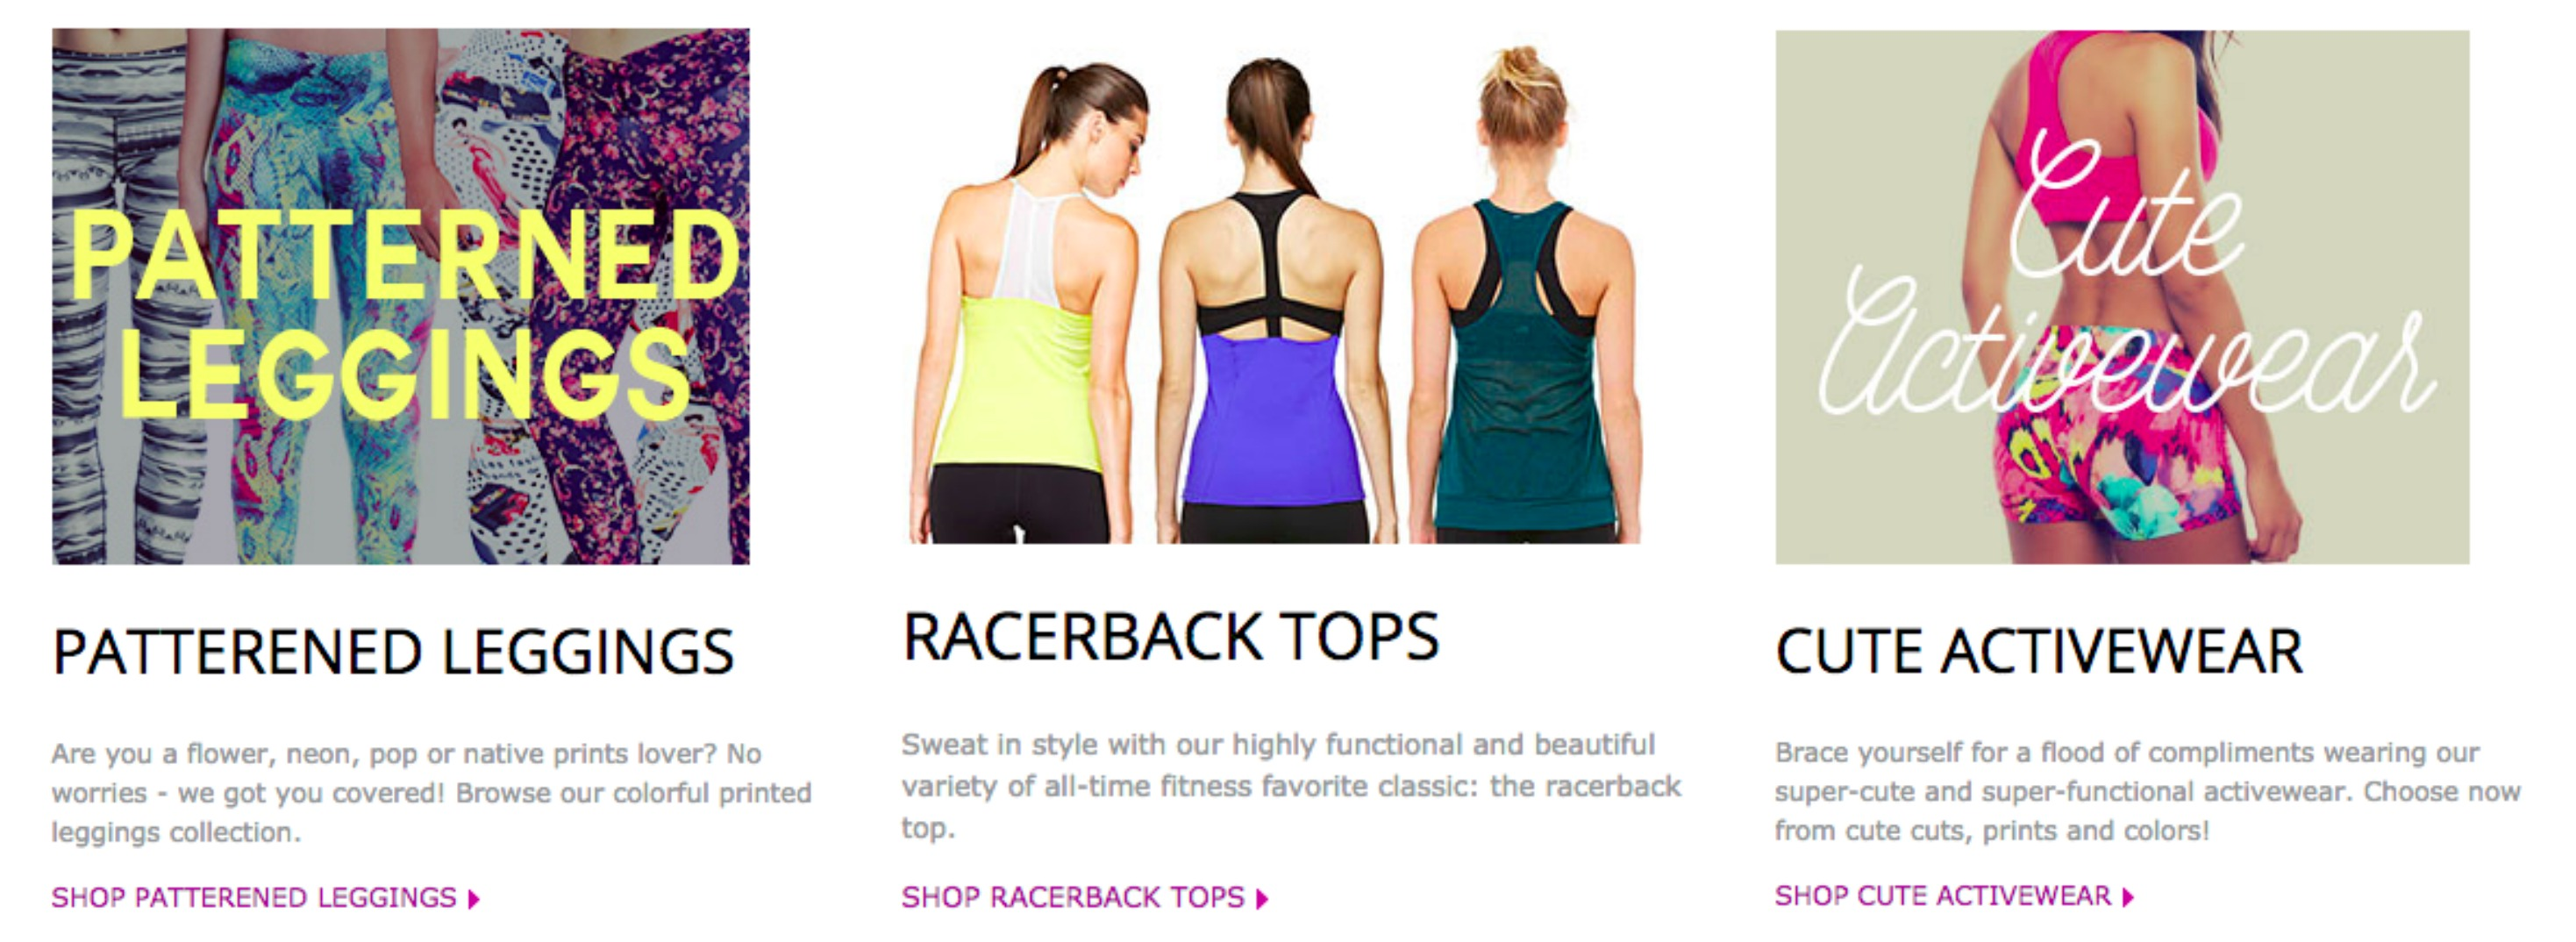 activewearUSA fitness fashion activewear